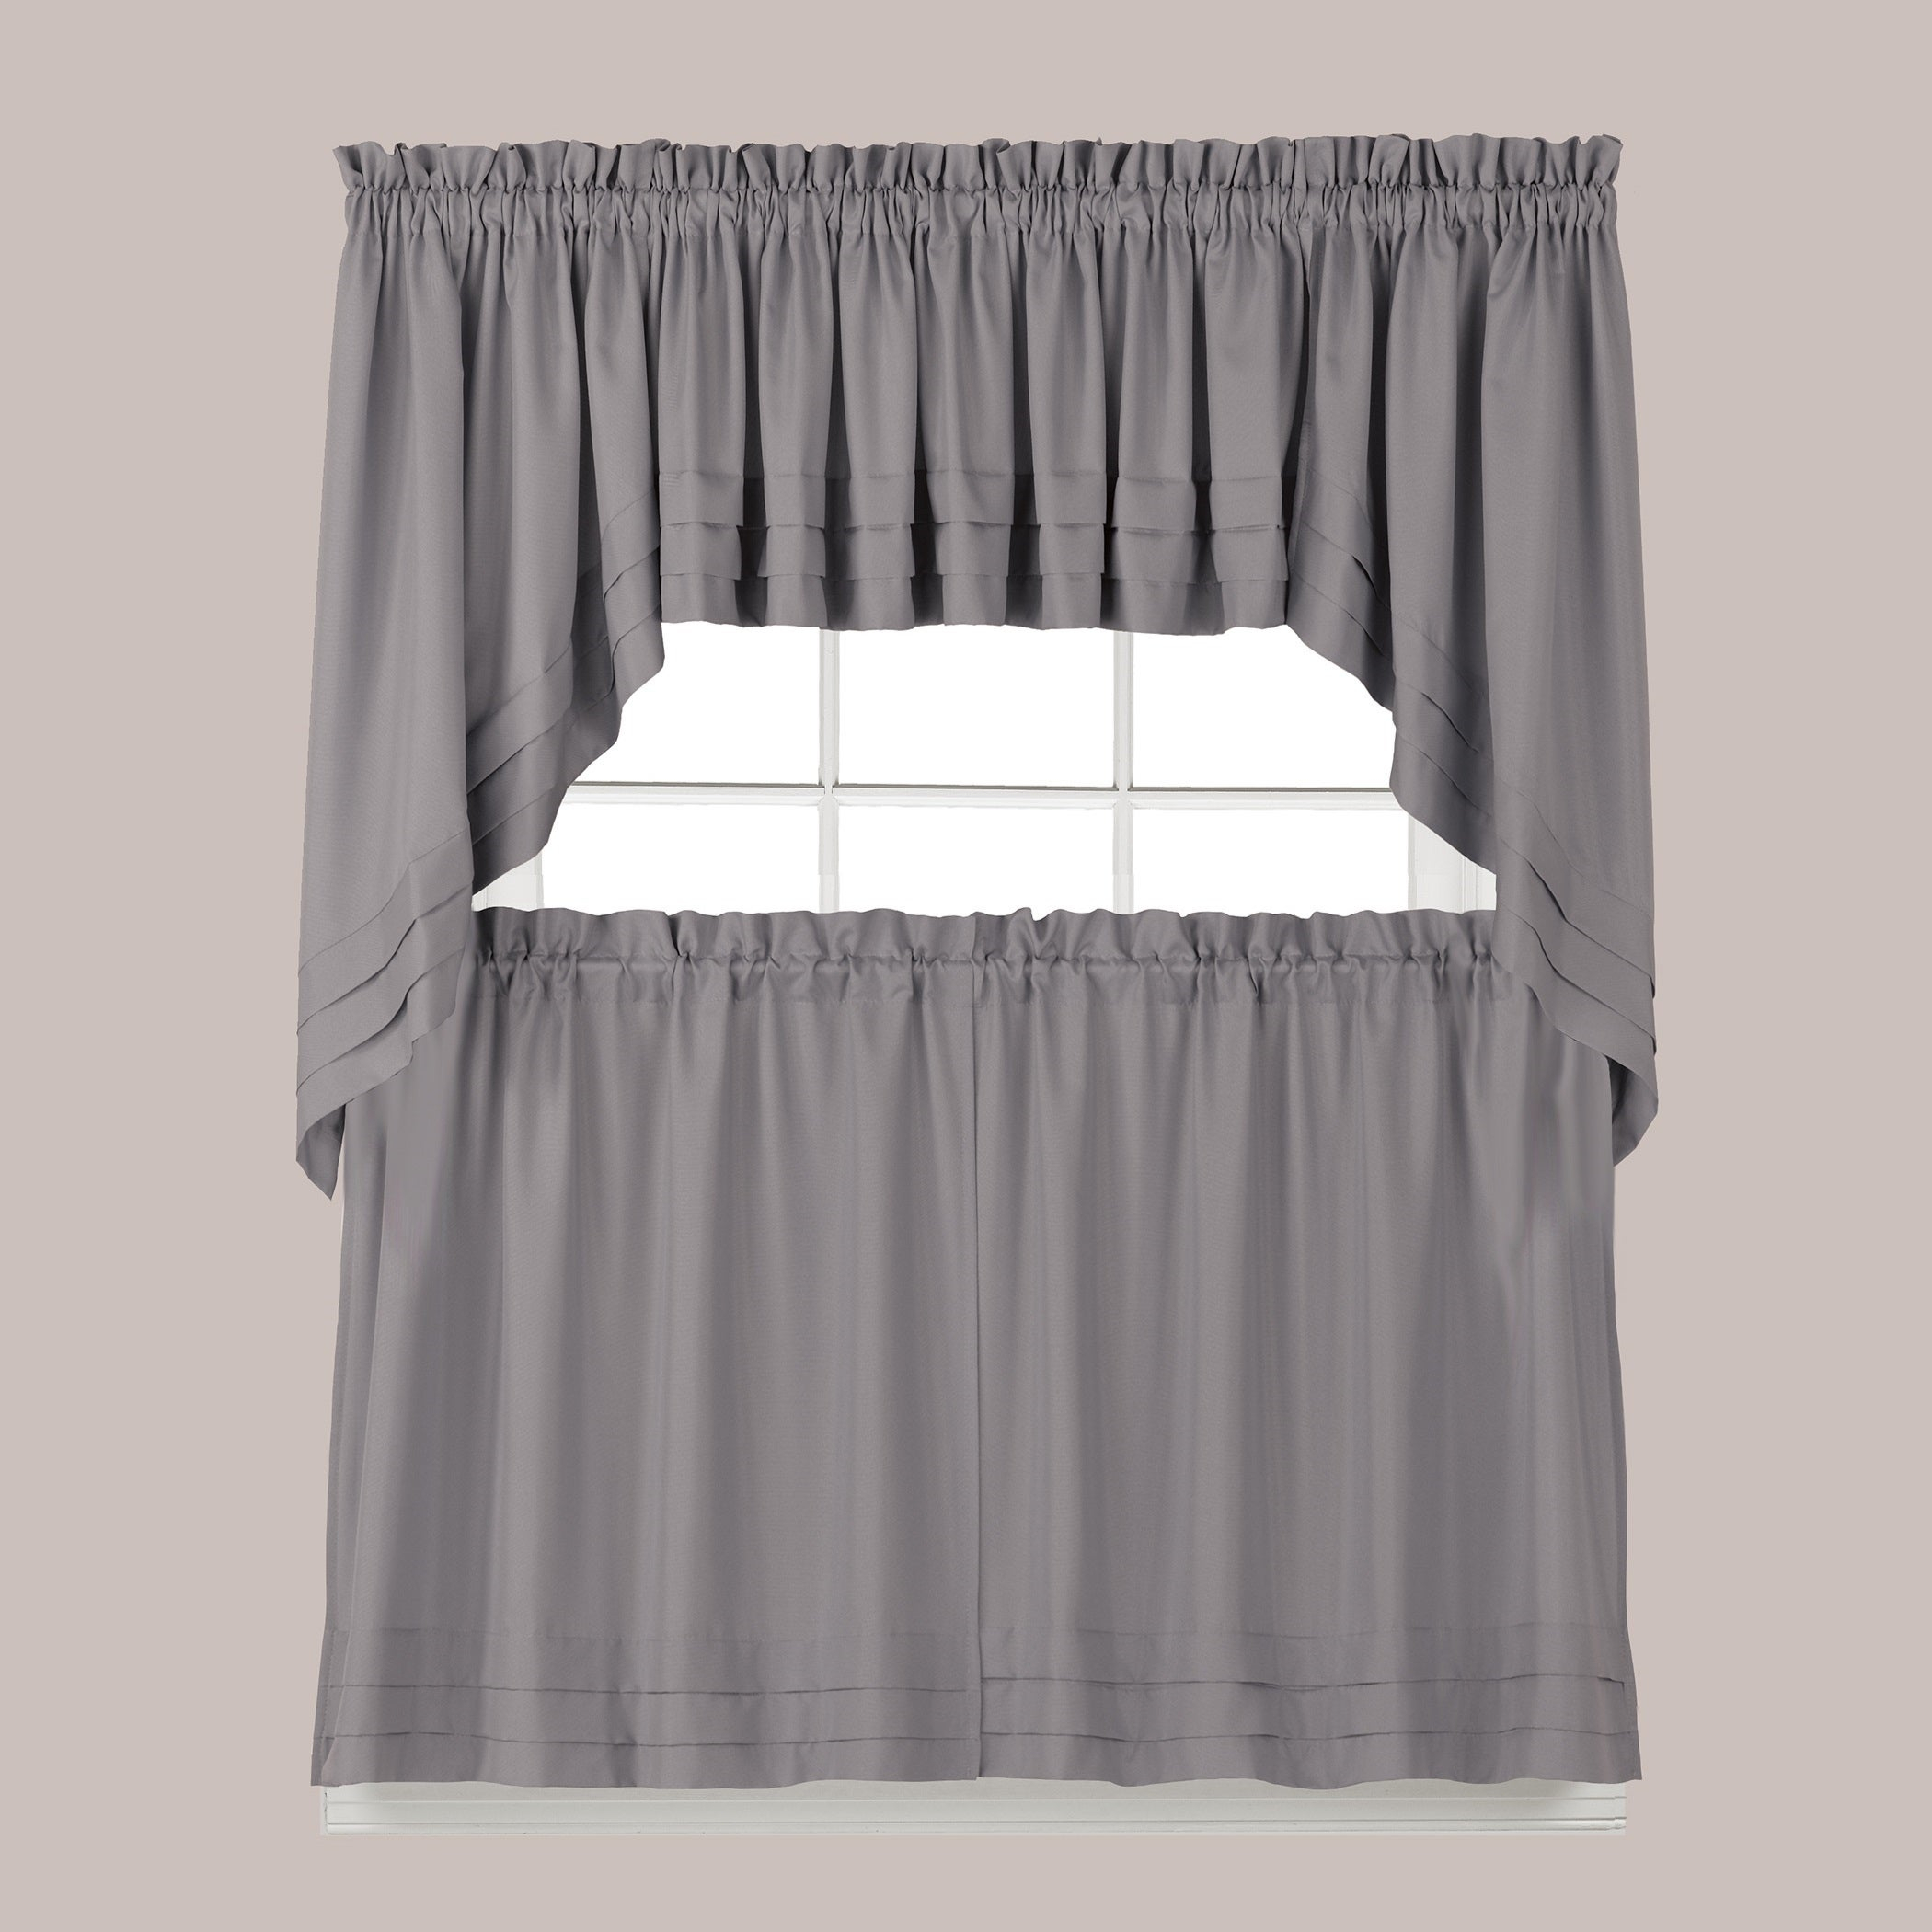 The Gray Barn Flinders Forge 45 Inch Tier Pair In Dove Grey Intended For Flinders Forge 30 Inch Tiers In Dove Grey (View 2 of 20)